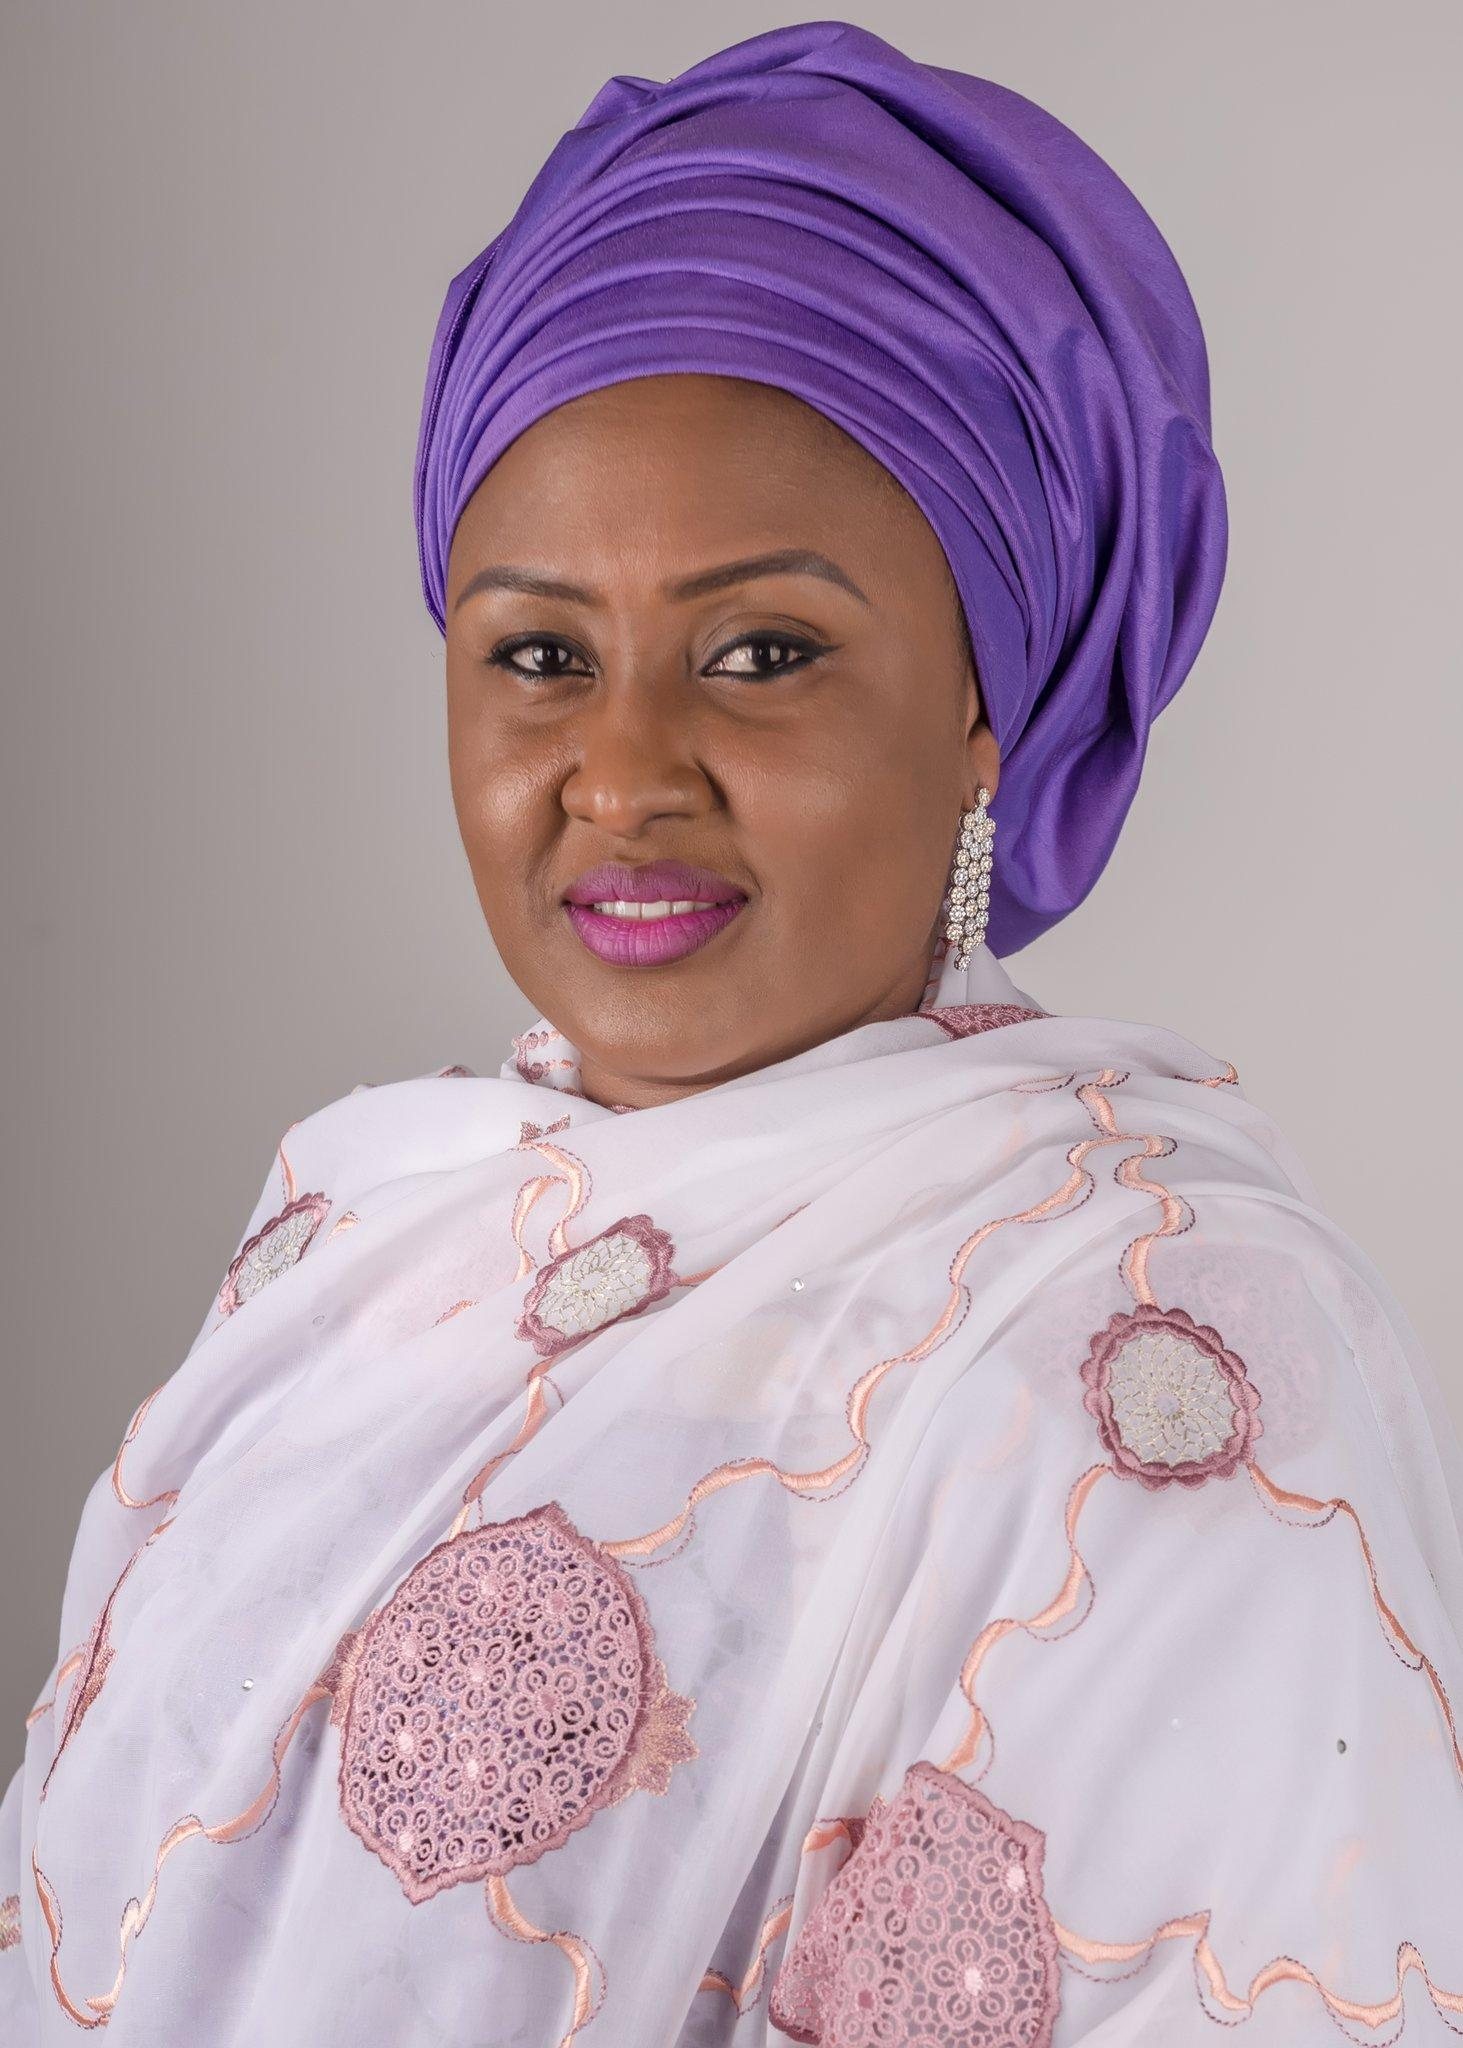 Aisha Buhari flown to Dubai for Undisclosed treatment